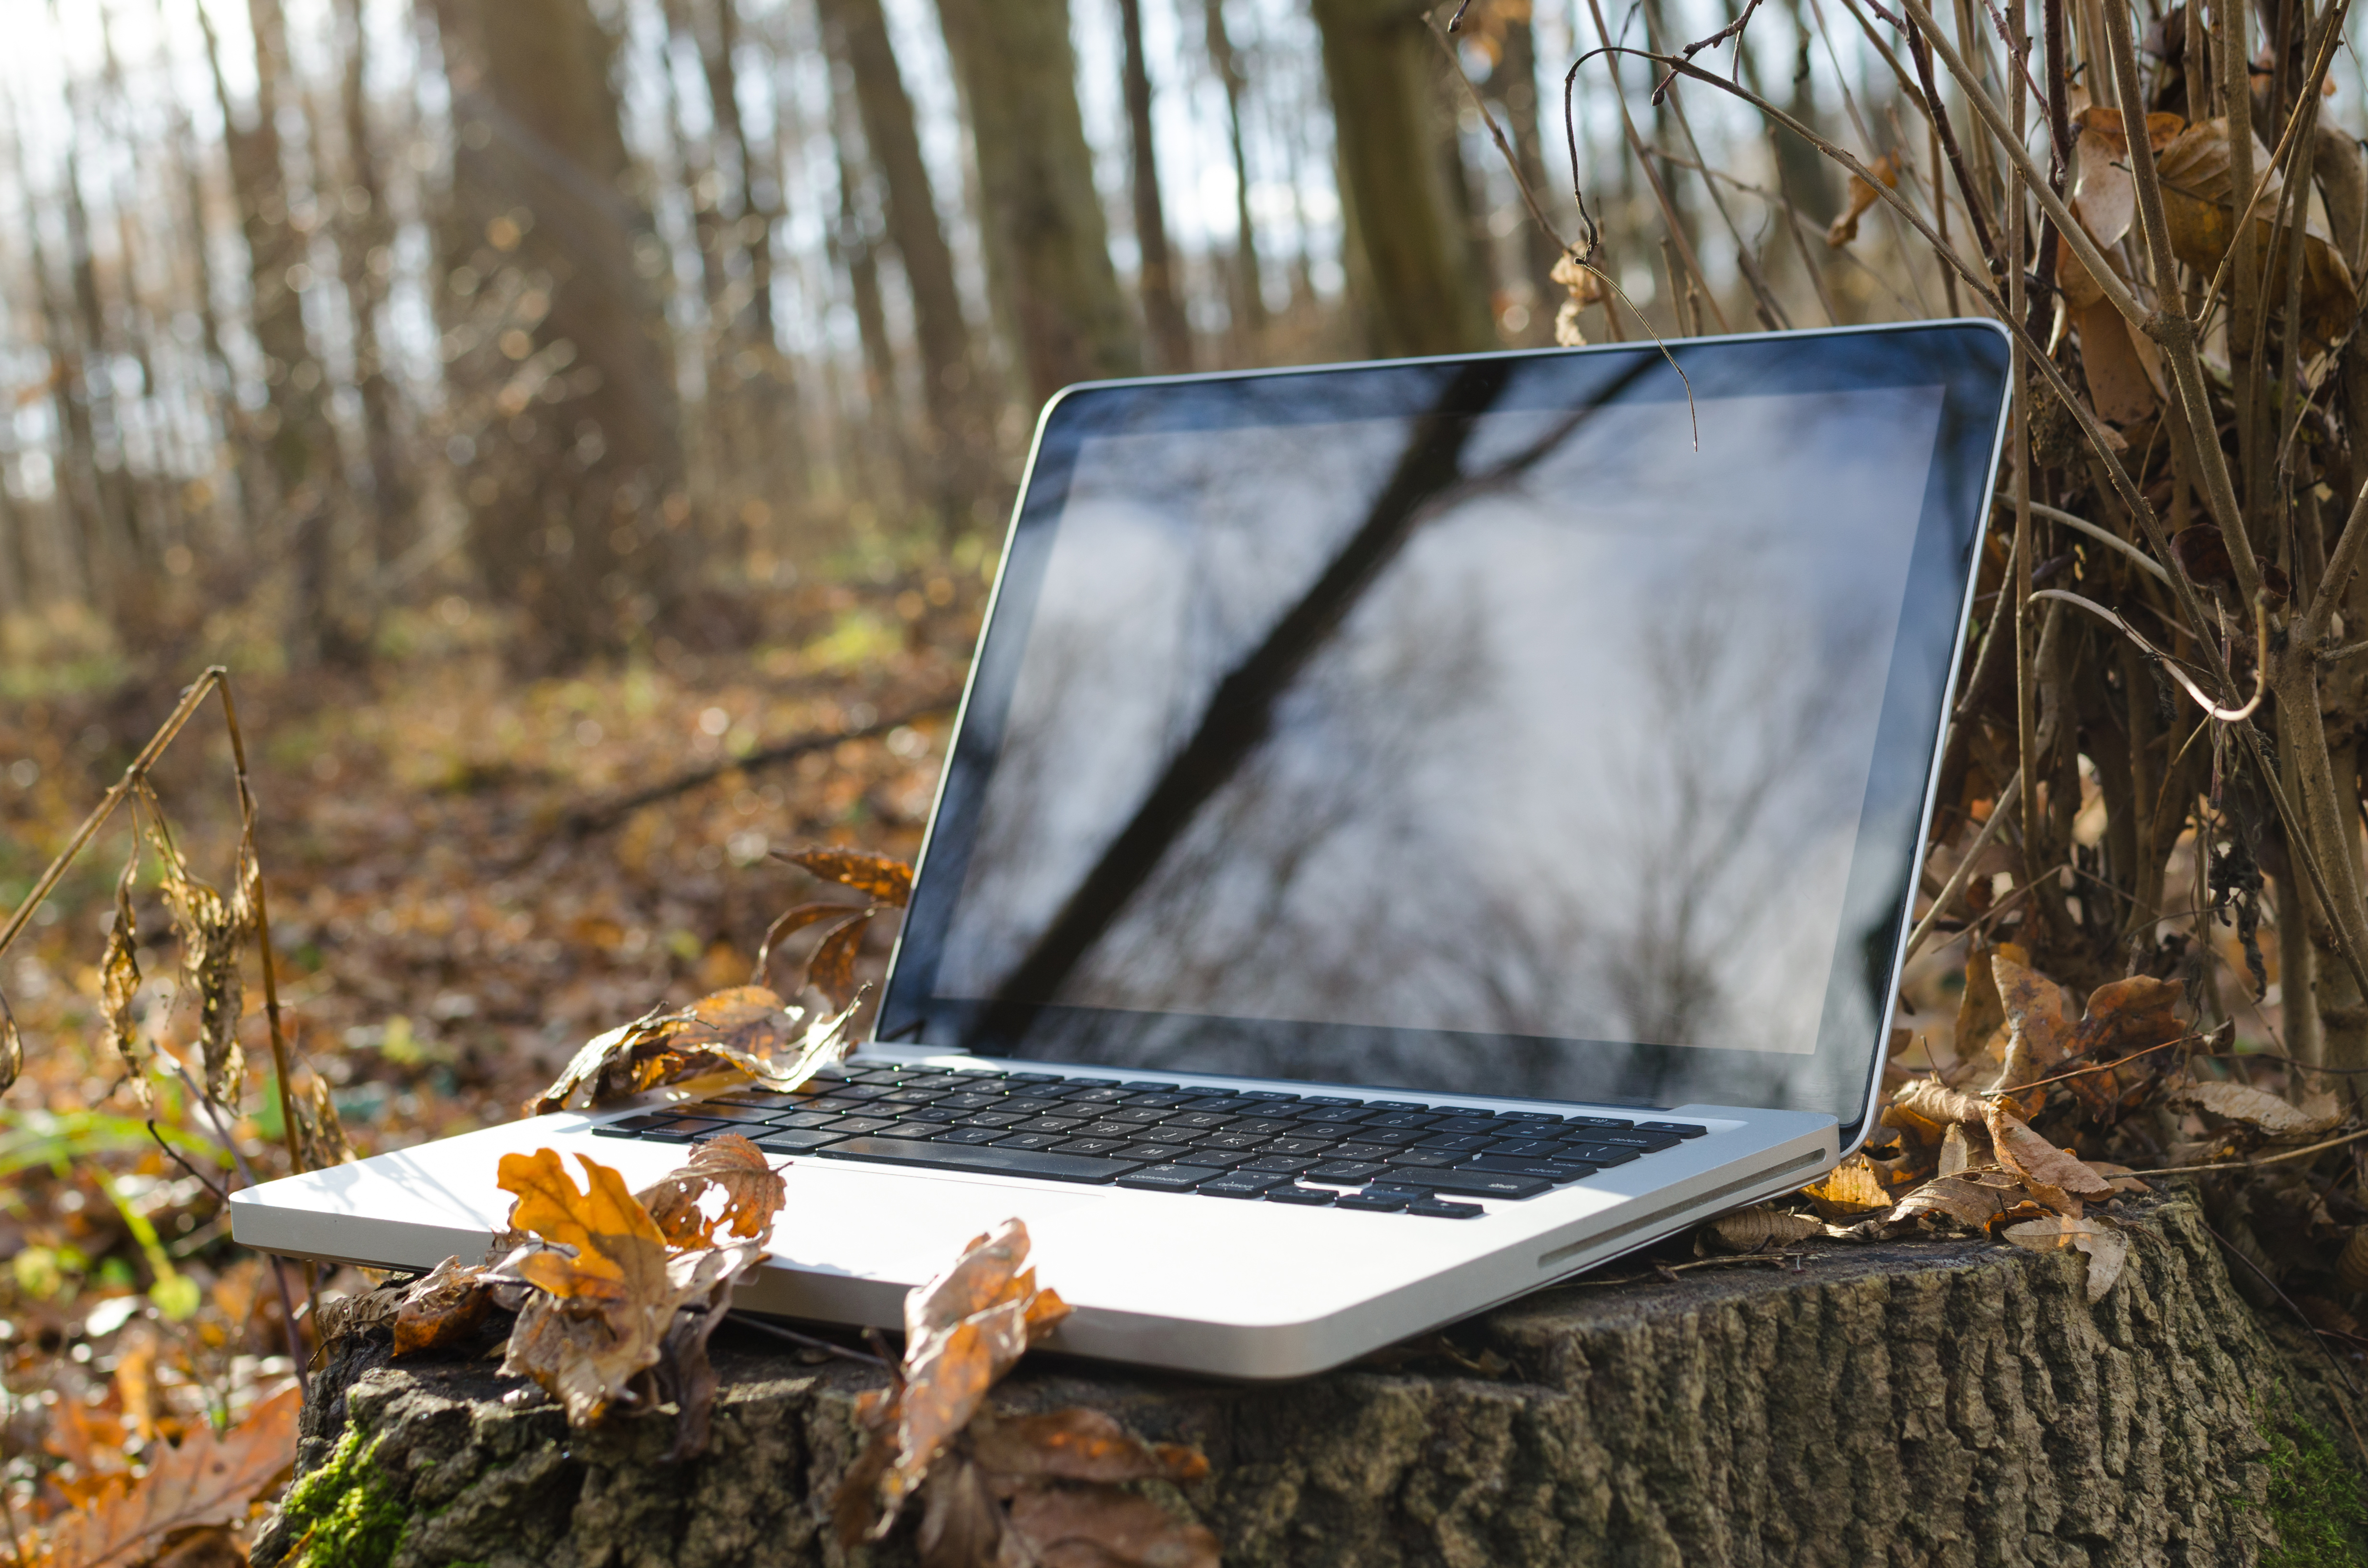 Working on laptop in forest photo